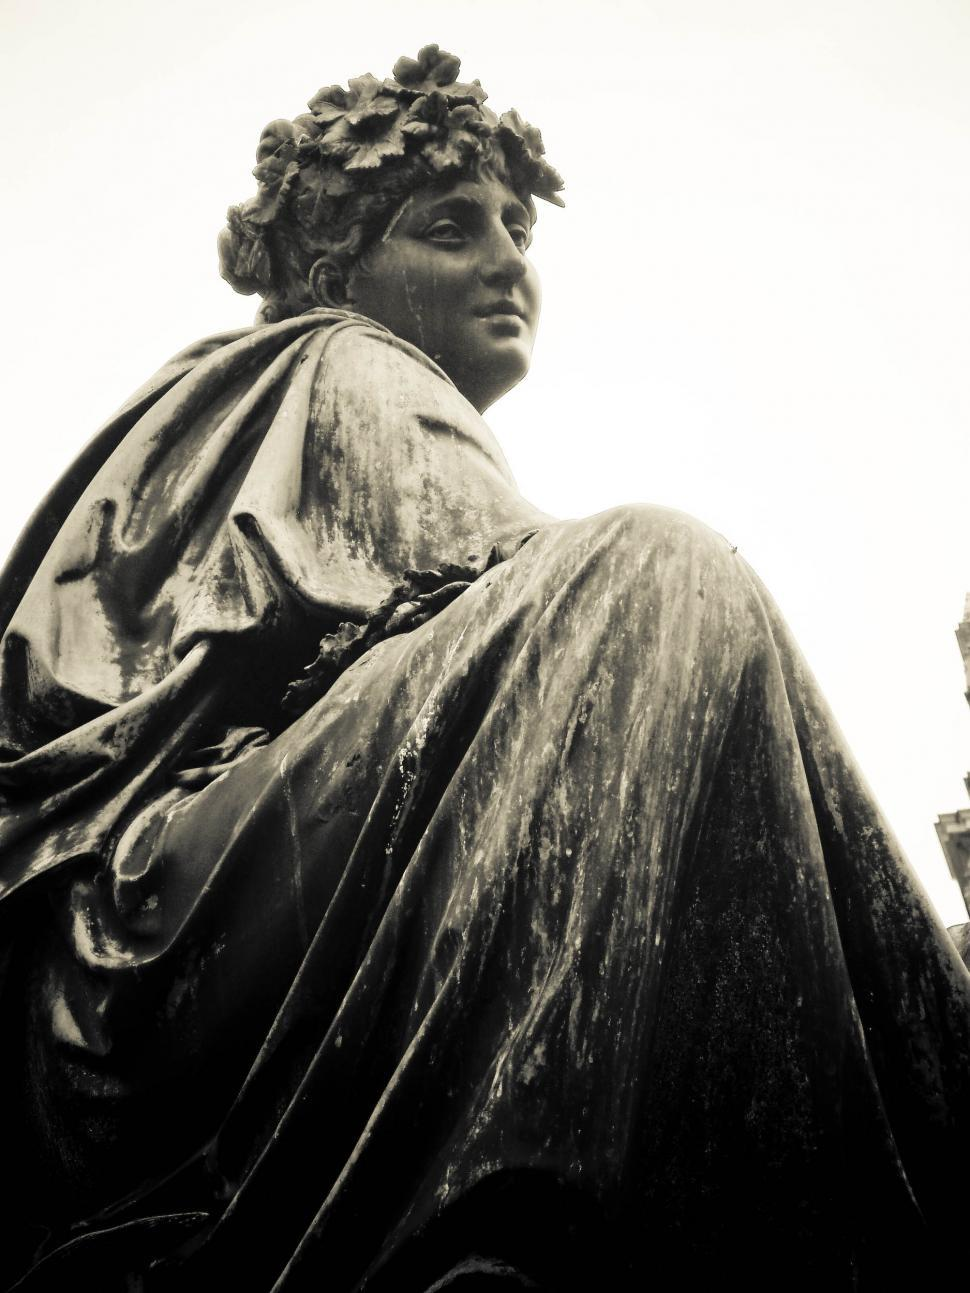 Download Free Stock Photo of statue